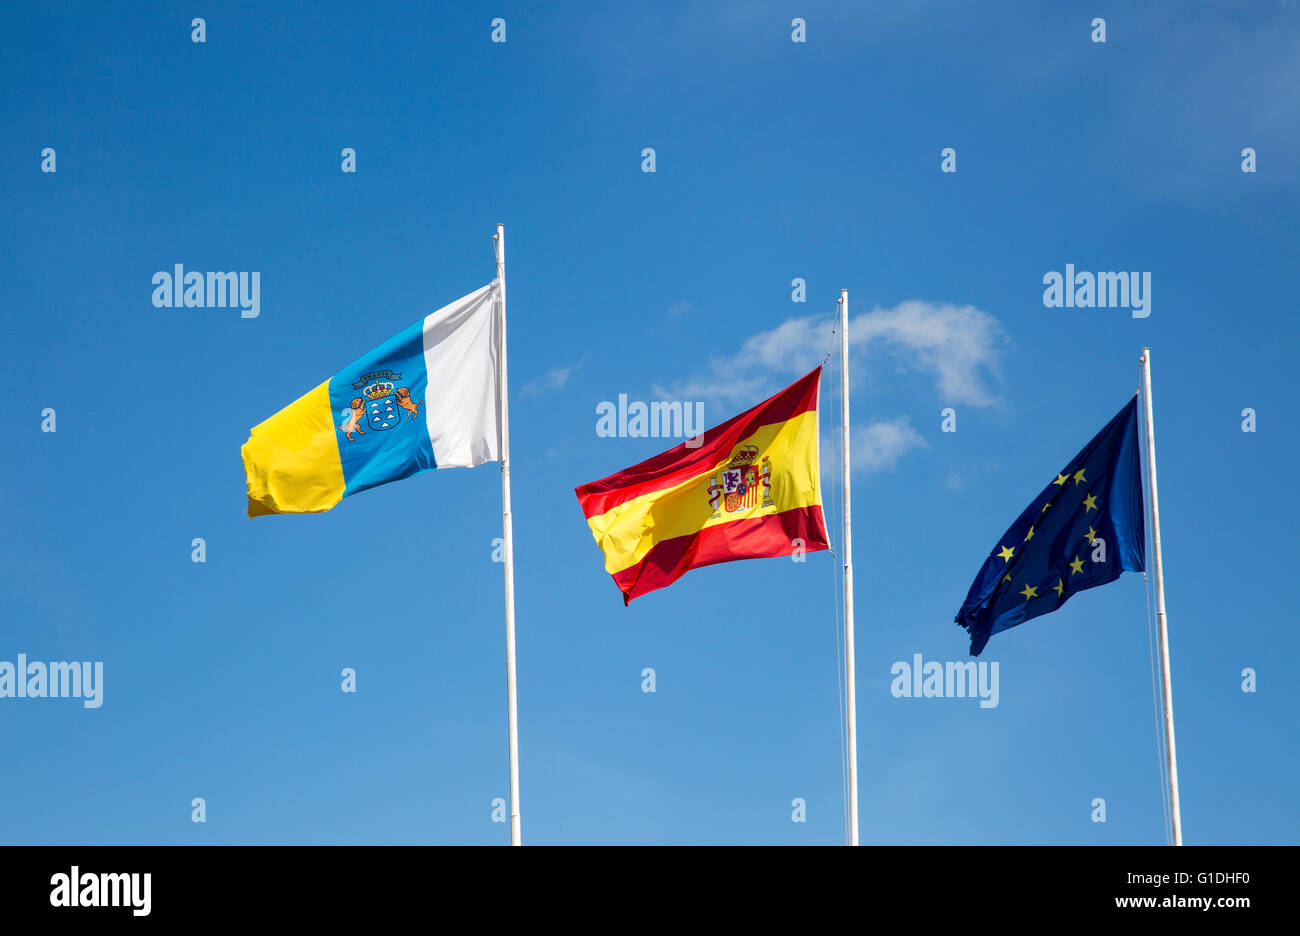 Flags of the European Union, Spain and Canary Islands flying at the airport, Lanzarote, Canary islands, Spain Stock Photo